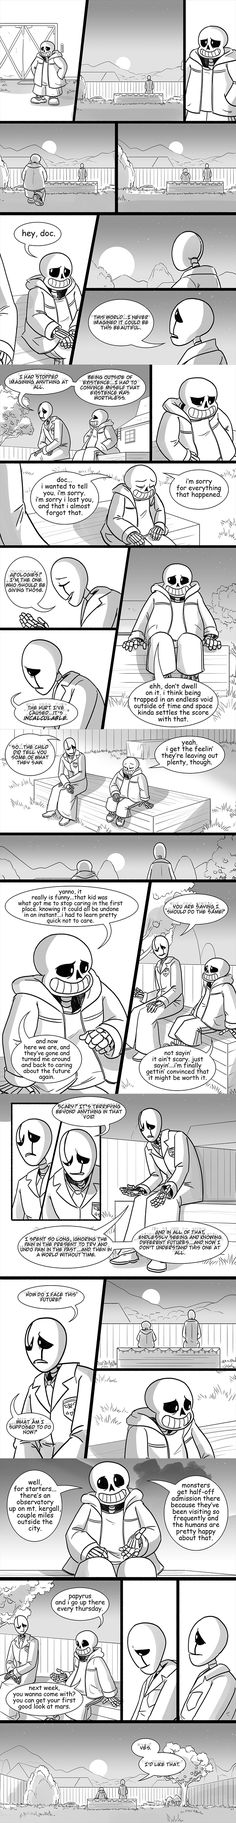 e926 2016 absurd_res animated_skeleton bone building clothed clothing comic dialogue duo fence gaster grass hi_res lab_coat lynxgriffin male outside sans_(undertale) sitting skeleton smile speech_bubble sunset text tree undead undertale video_games